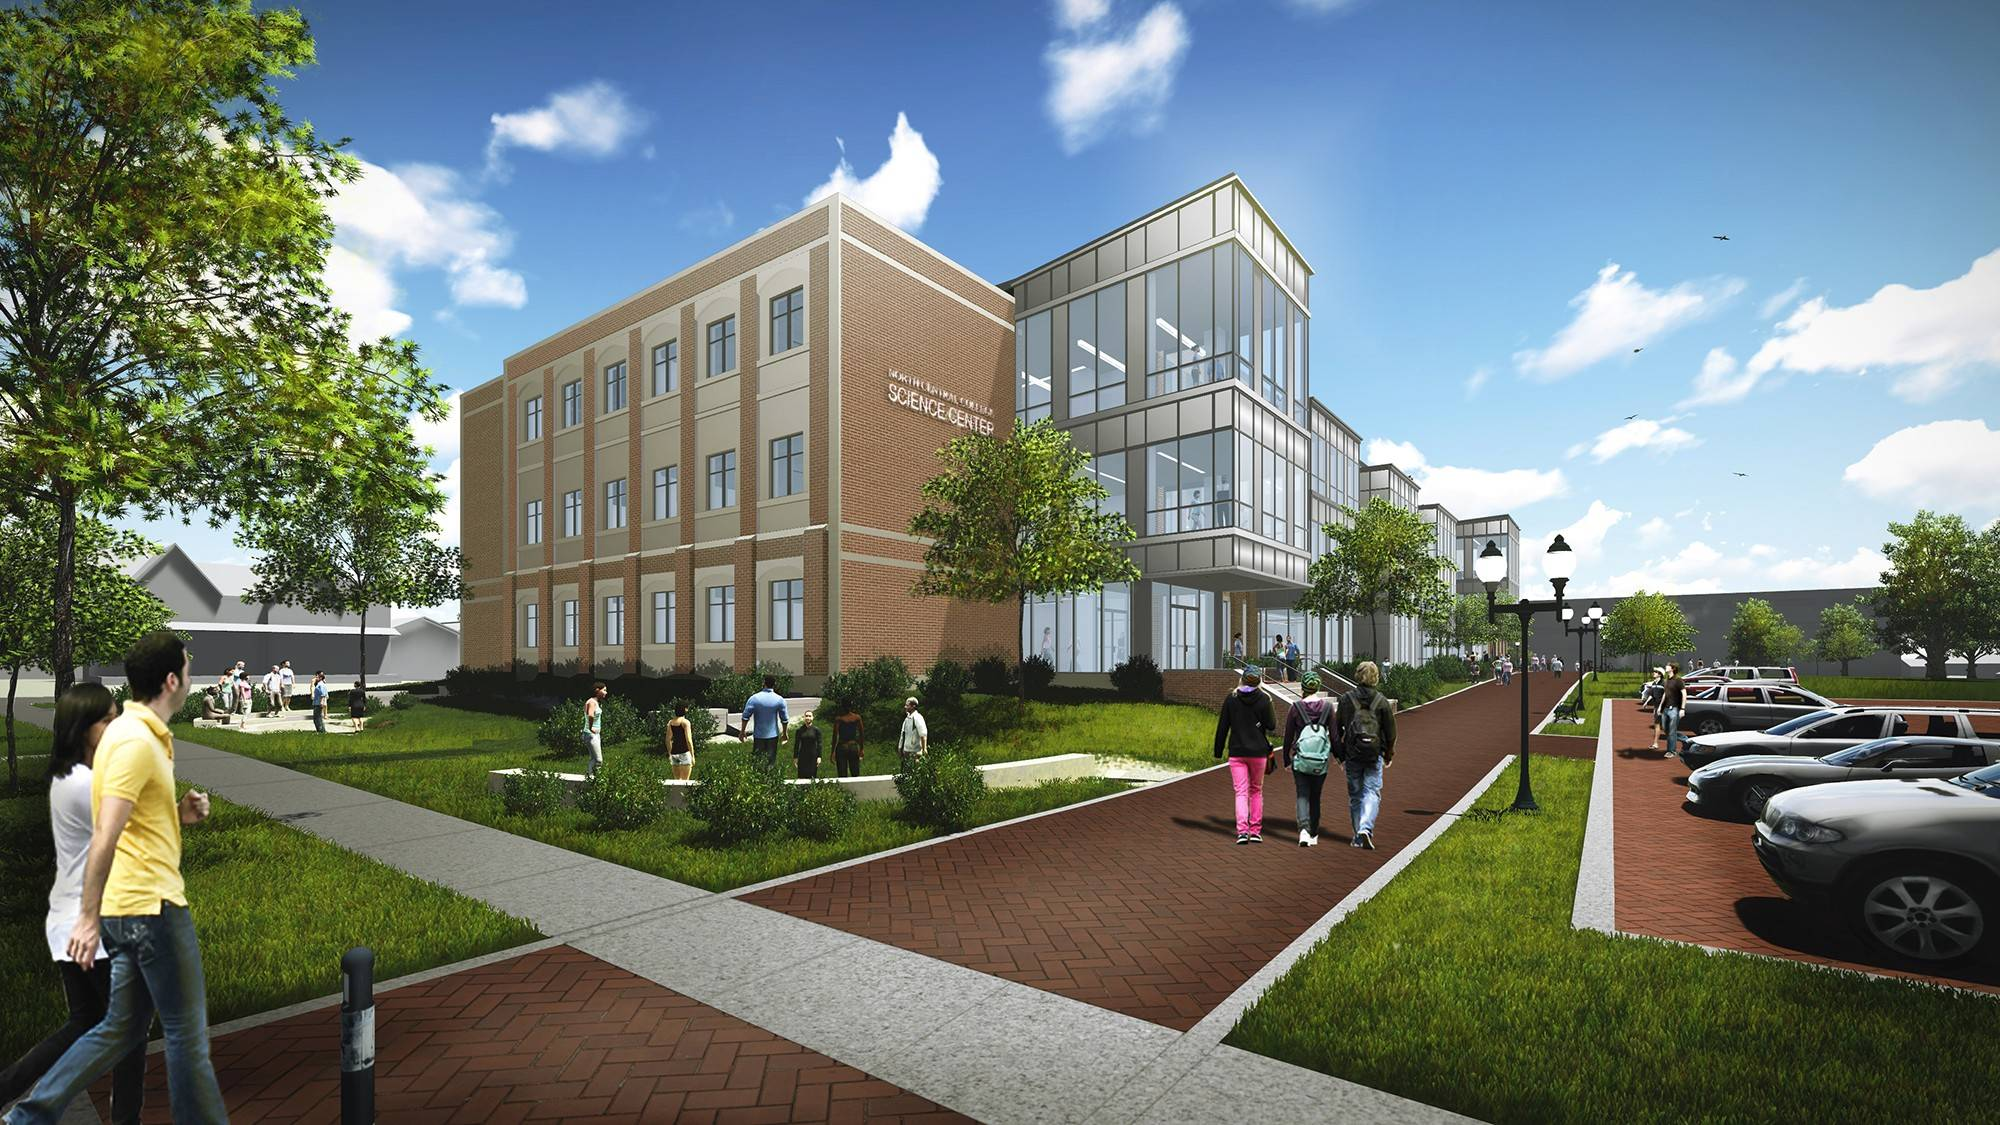 Construction of a new science center at North Central College in Naperville began Friday with a groundbreaking ceremony. The college is raising $60 million for the new facility to provide updated teaching and research labs, seminar rooms, offices and student gathering spaces.